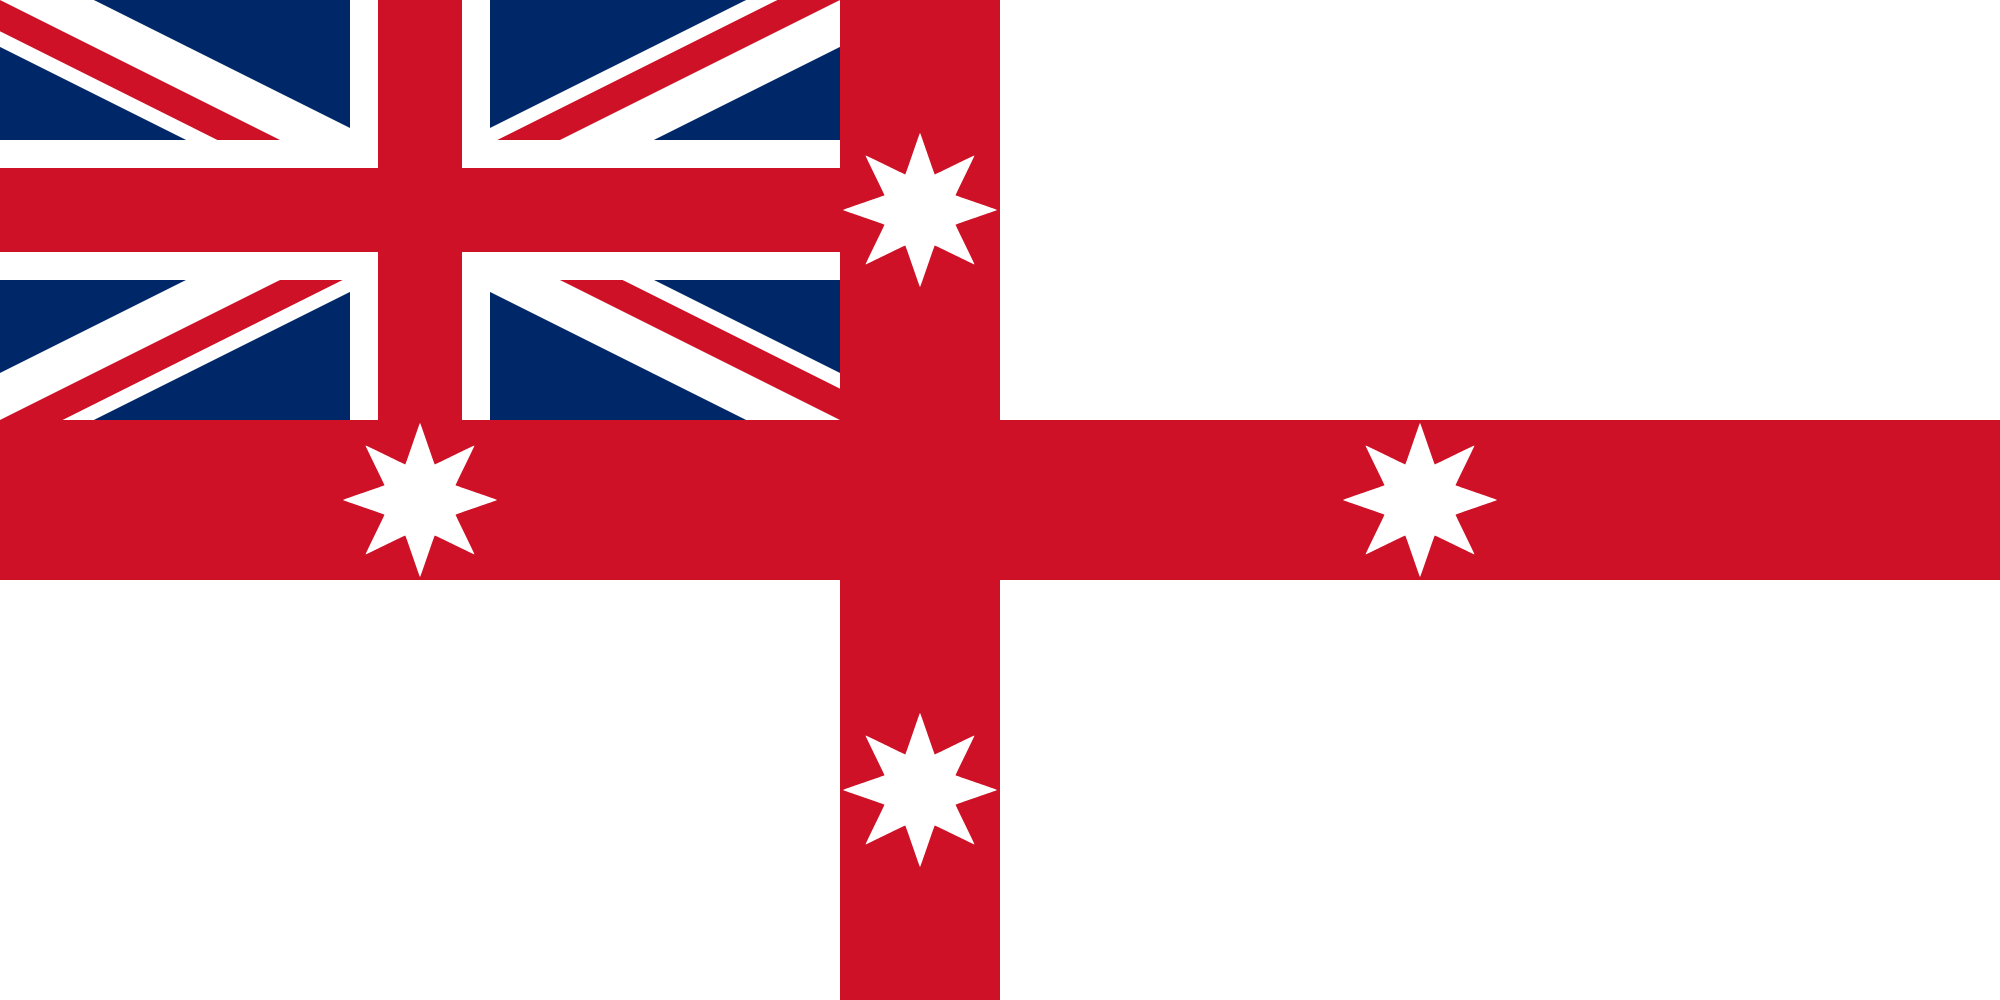 1000+ images about Flags with Southern Cross on Pinterest.